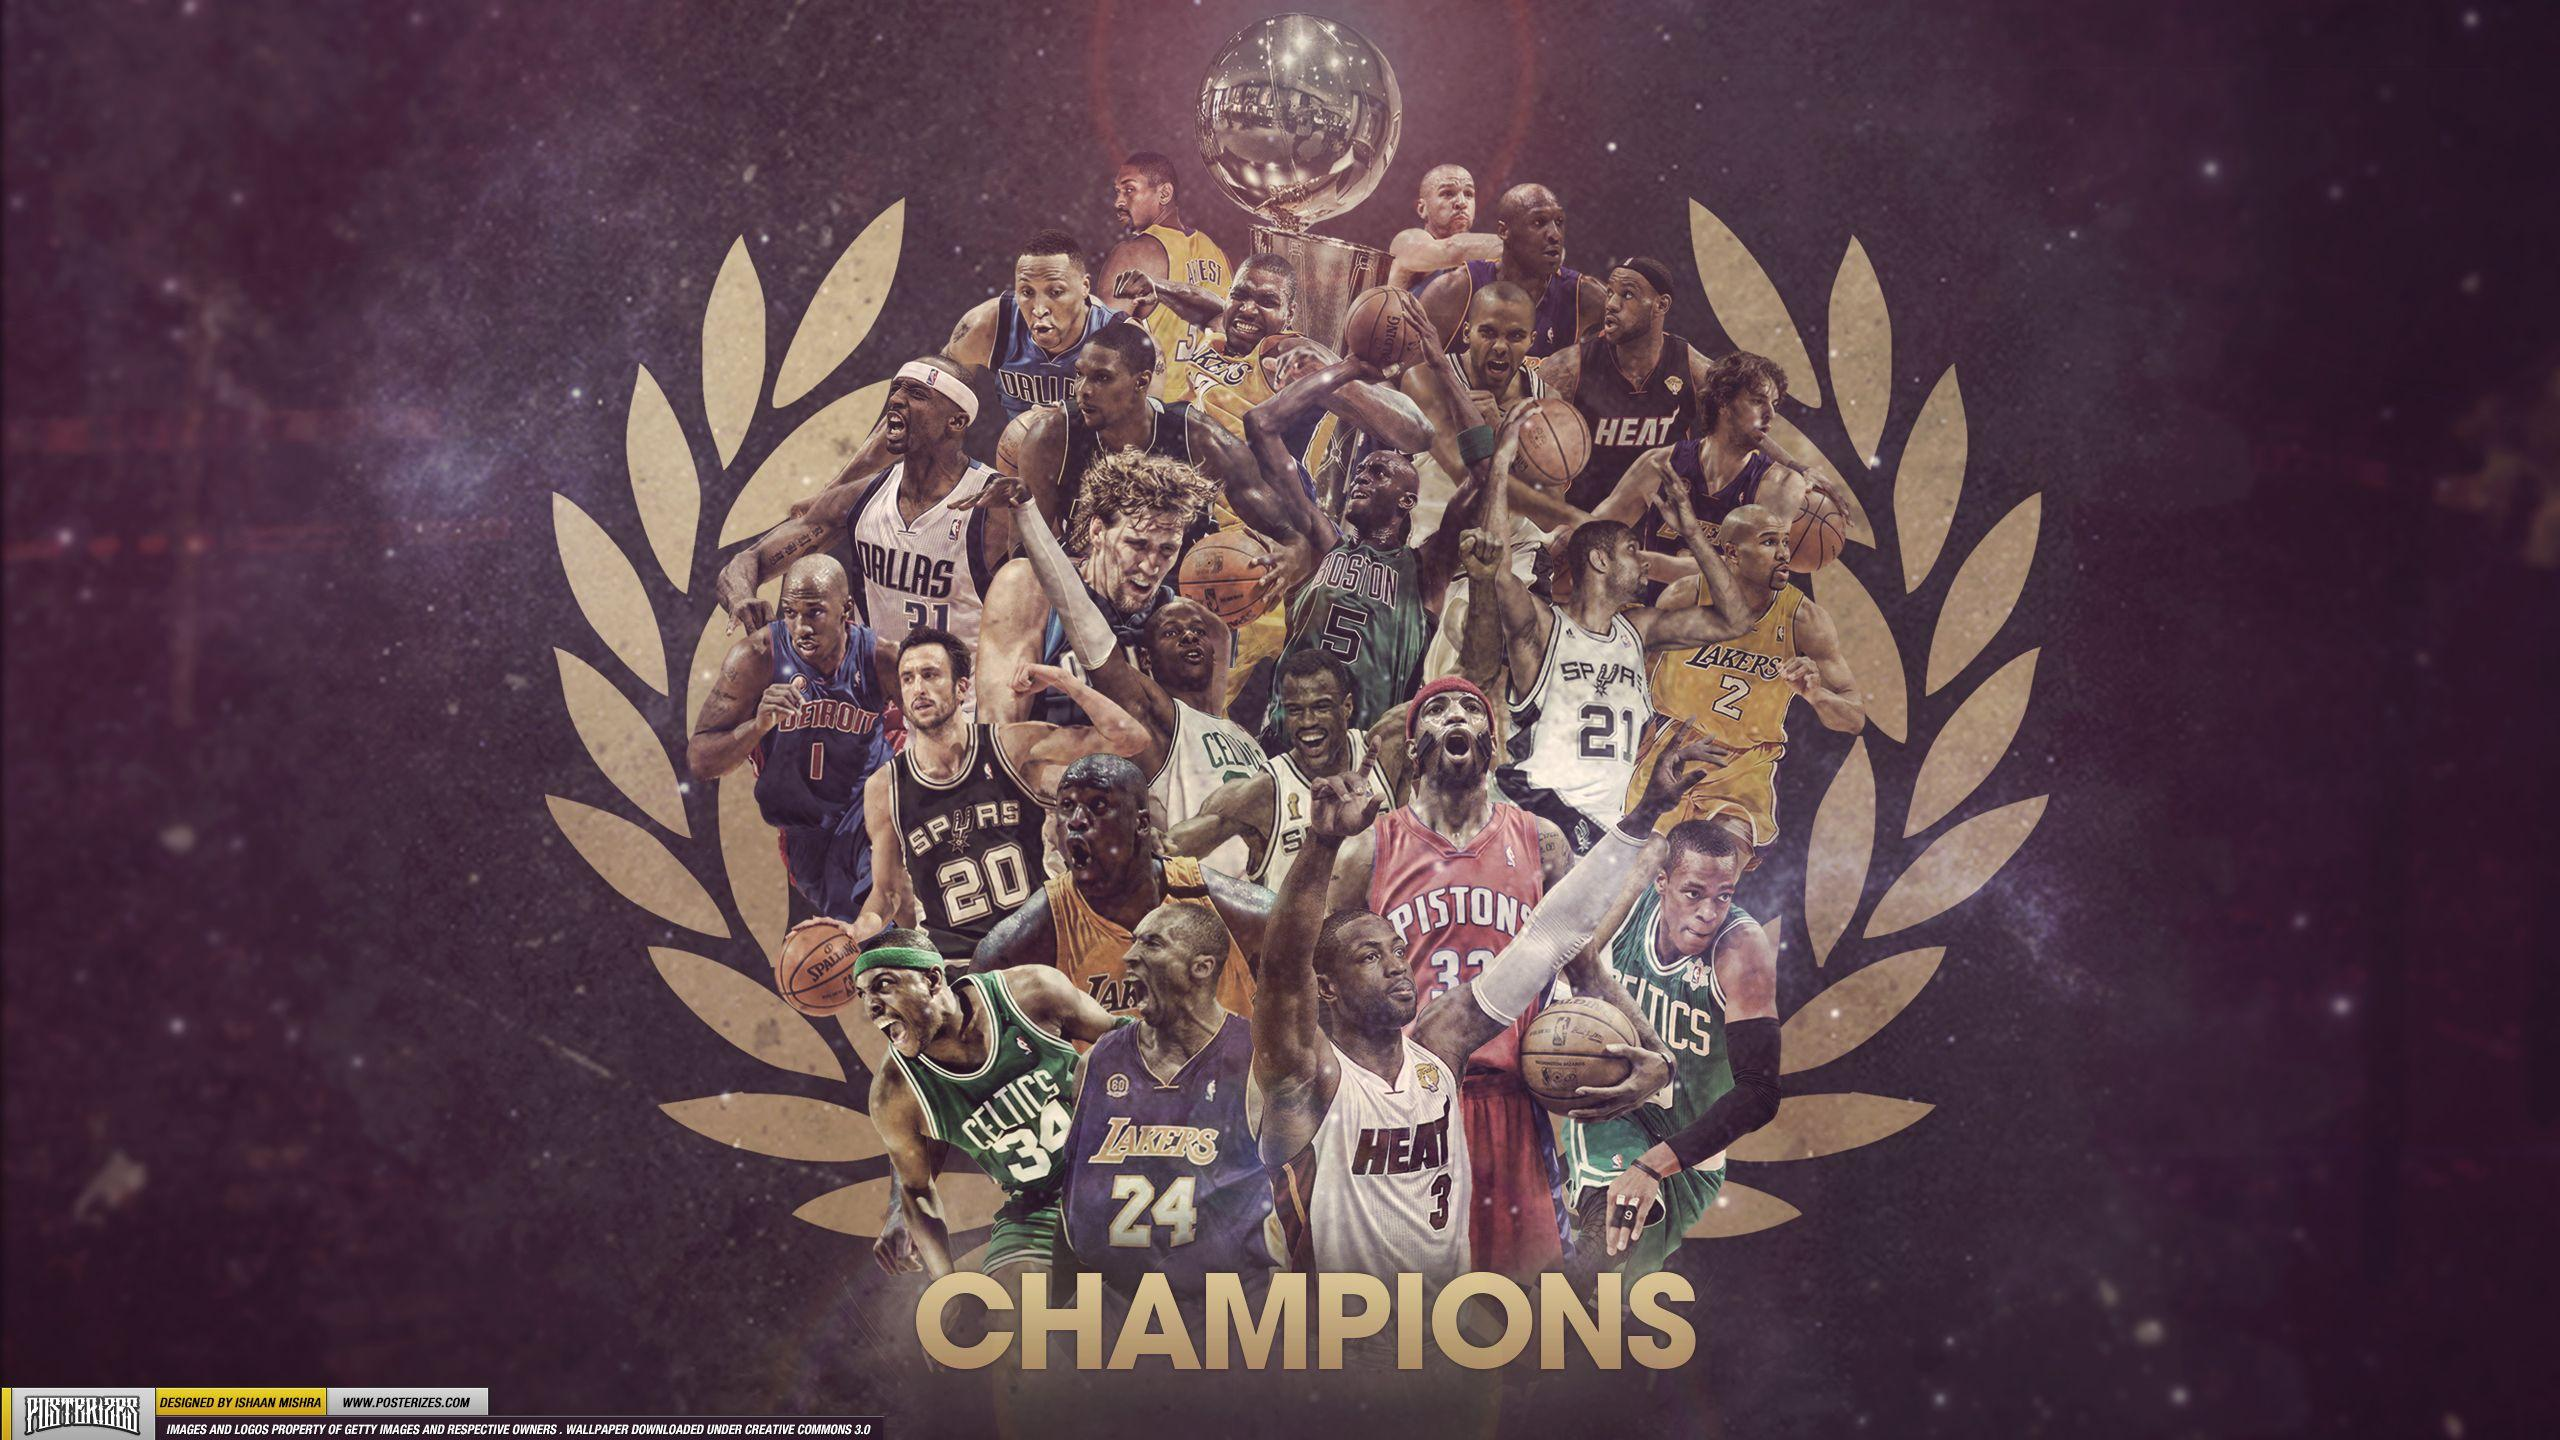 nba champions 1999 2012 wallpaper slamonline